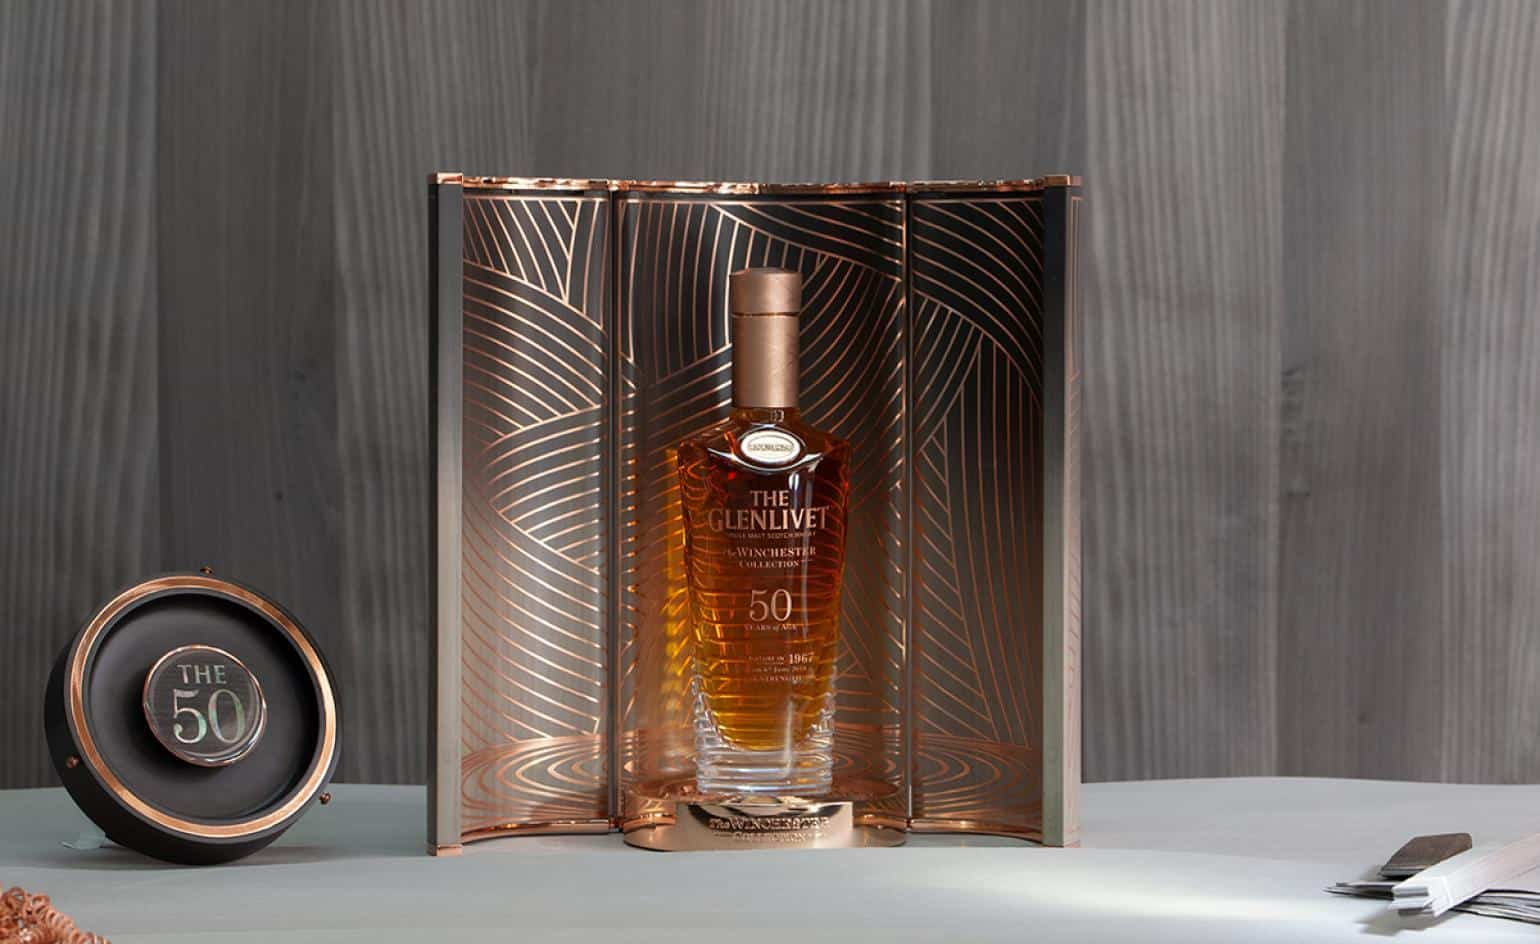 The New Glenlivet and Bethan Gray Limited Edition 50 Year Old Whiskey Collection